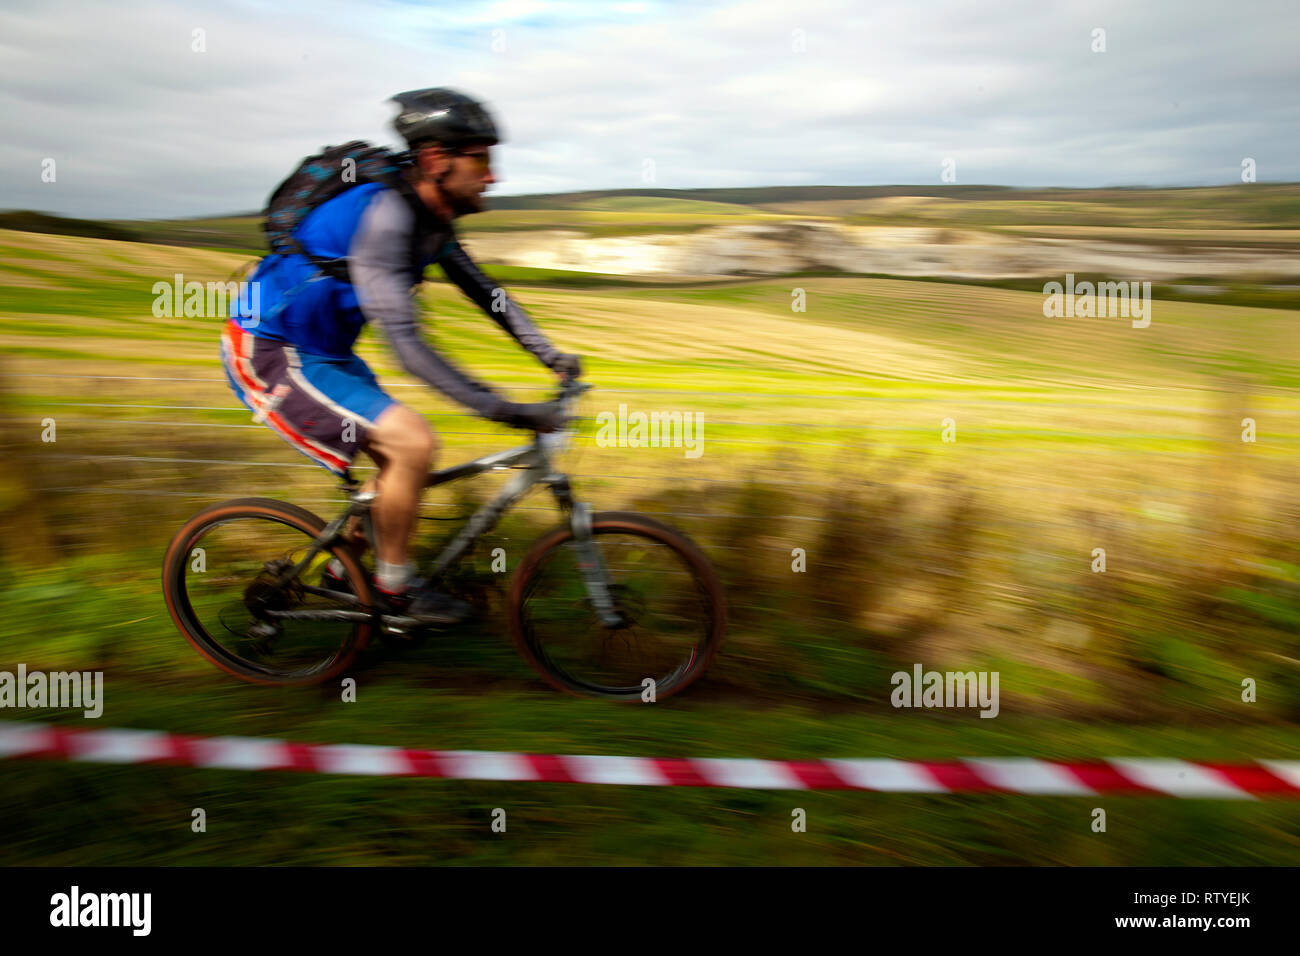 cycle, cycling, bike, fitness, travel, race, - Stock Image